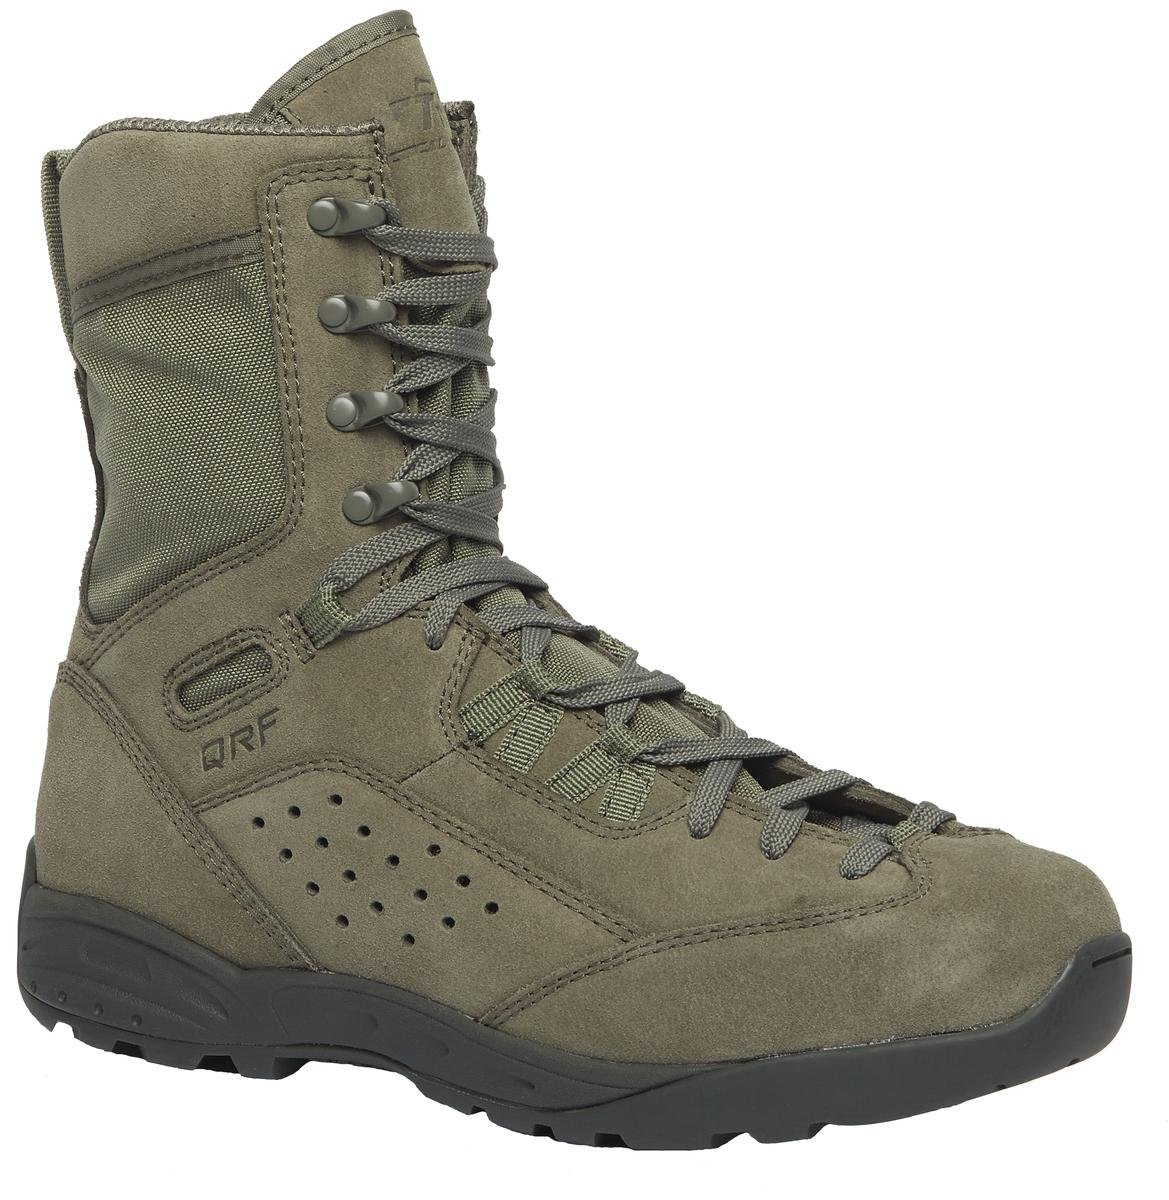 Belleville Tactical Research QRF ALPHA S9 9'' Hot Weather Boot, Sage, 8